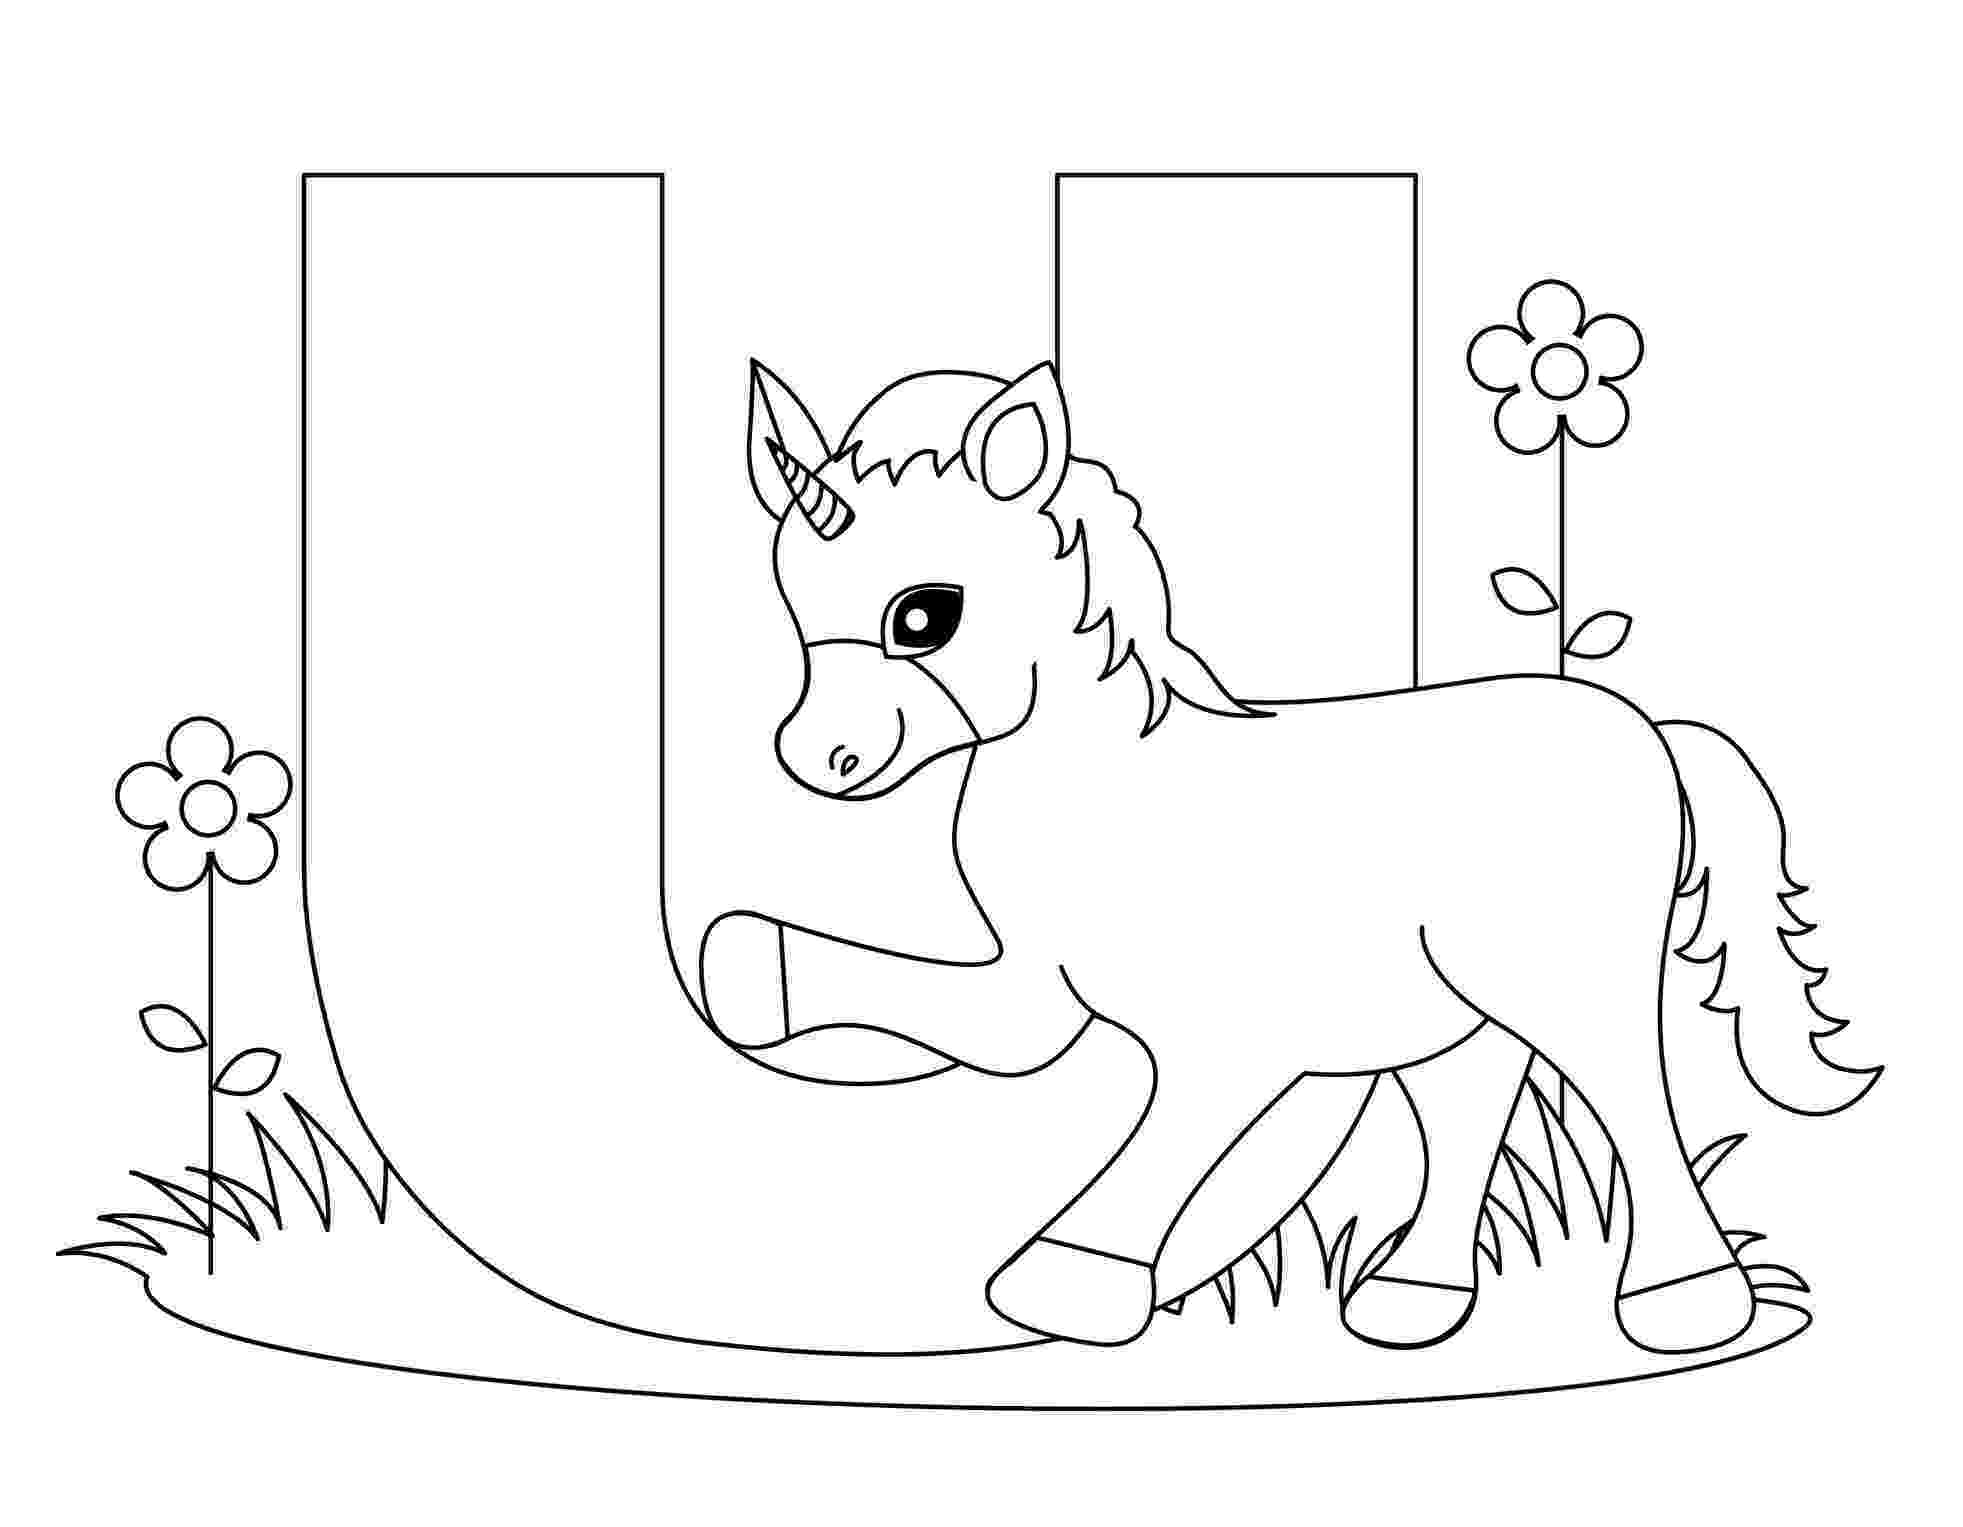 abc coloring book download fun learn free worksheets for kid ภาพระบายส abc a z coloring book download abc